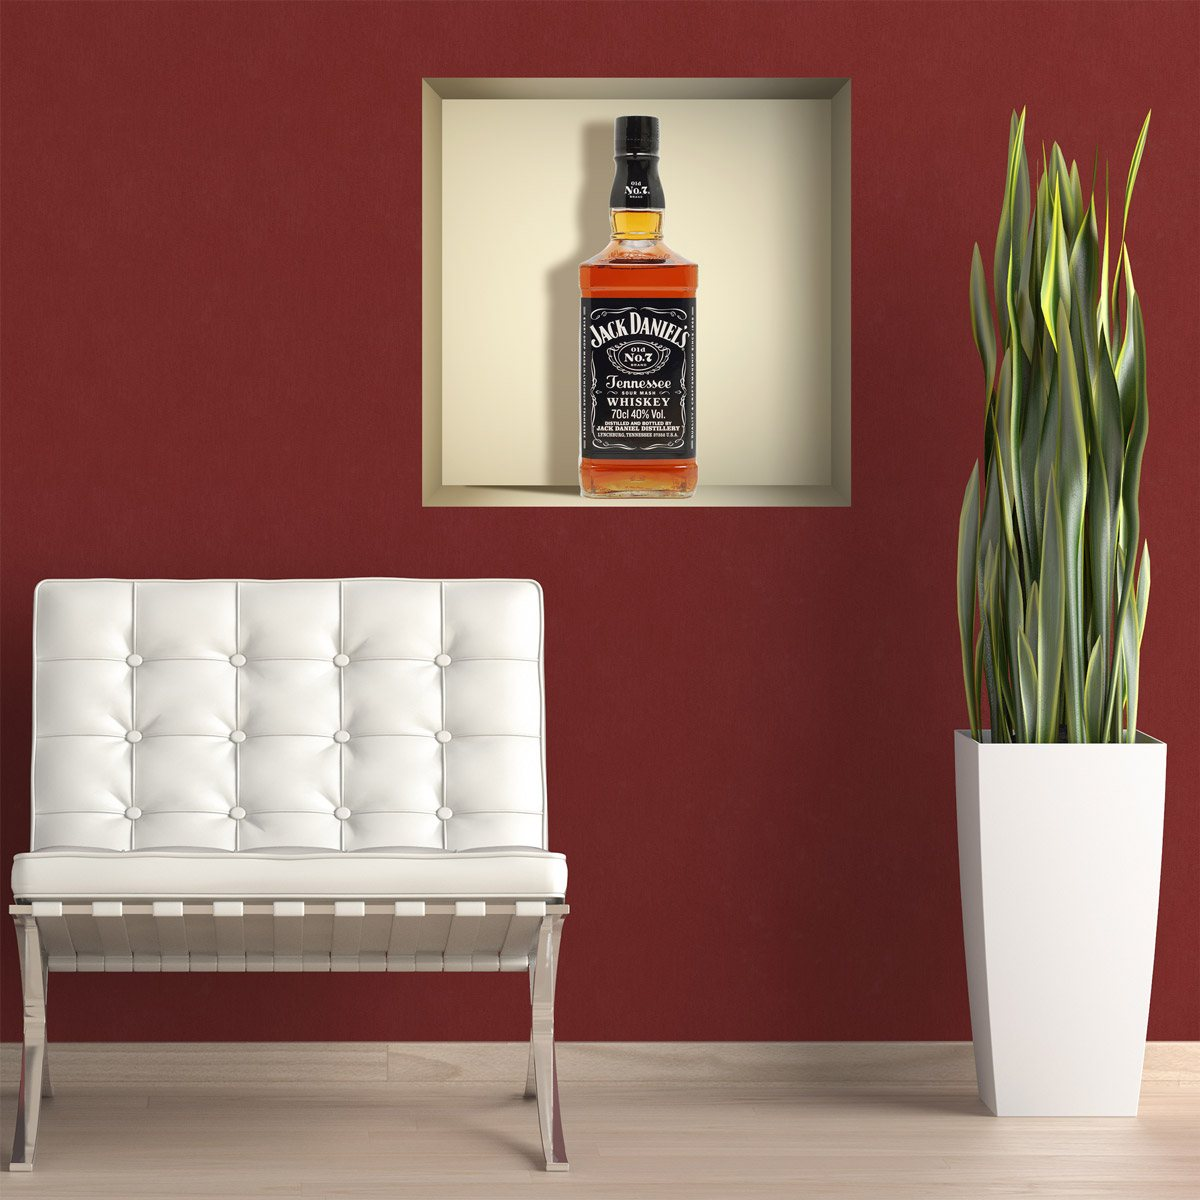 Jack daniels wall stickers images home wall decoration ideas jack daniels wall stickers images home wall decoration ideas jack daniels wall stickers choice image home amipublicfo Gallery